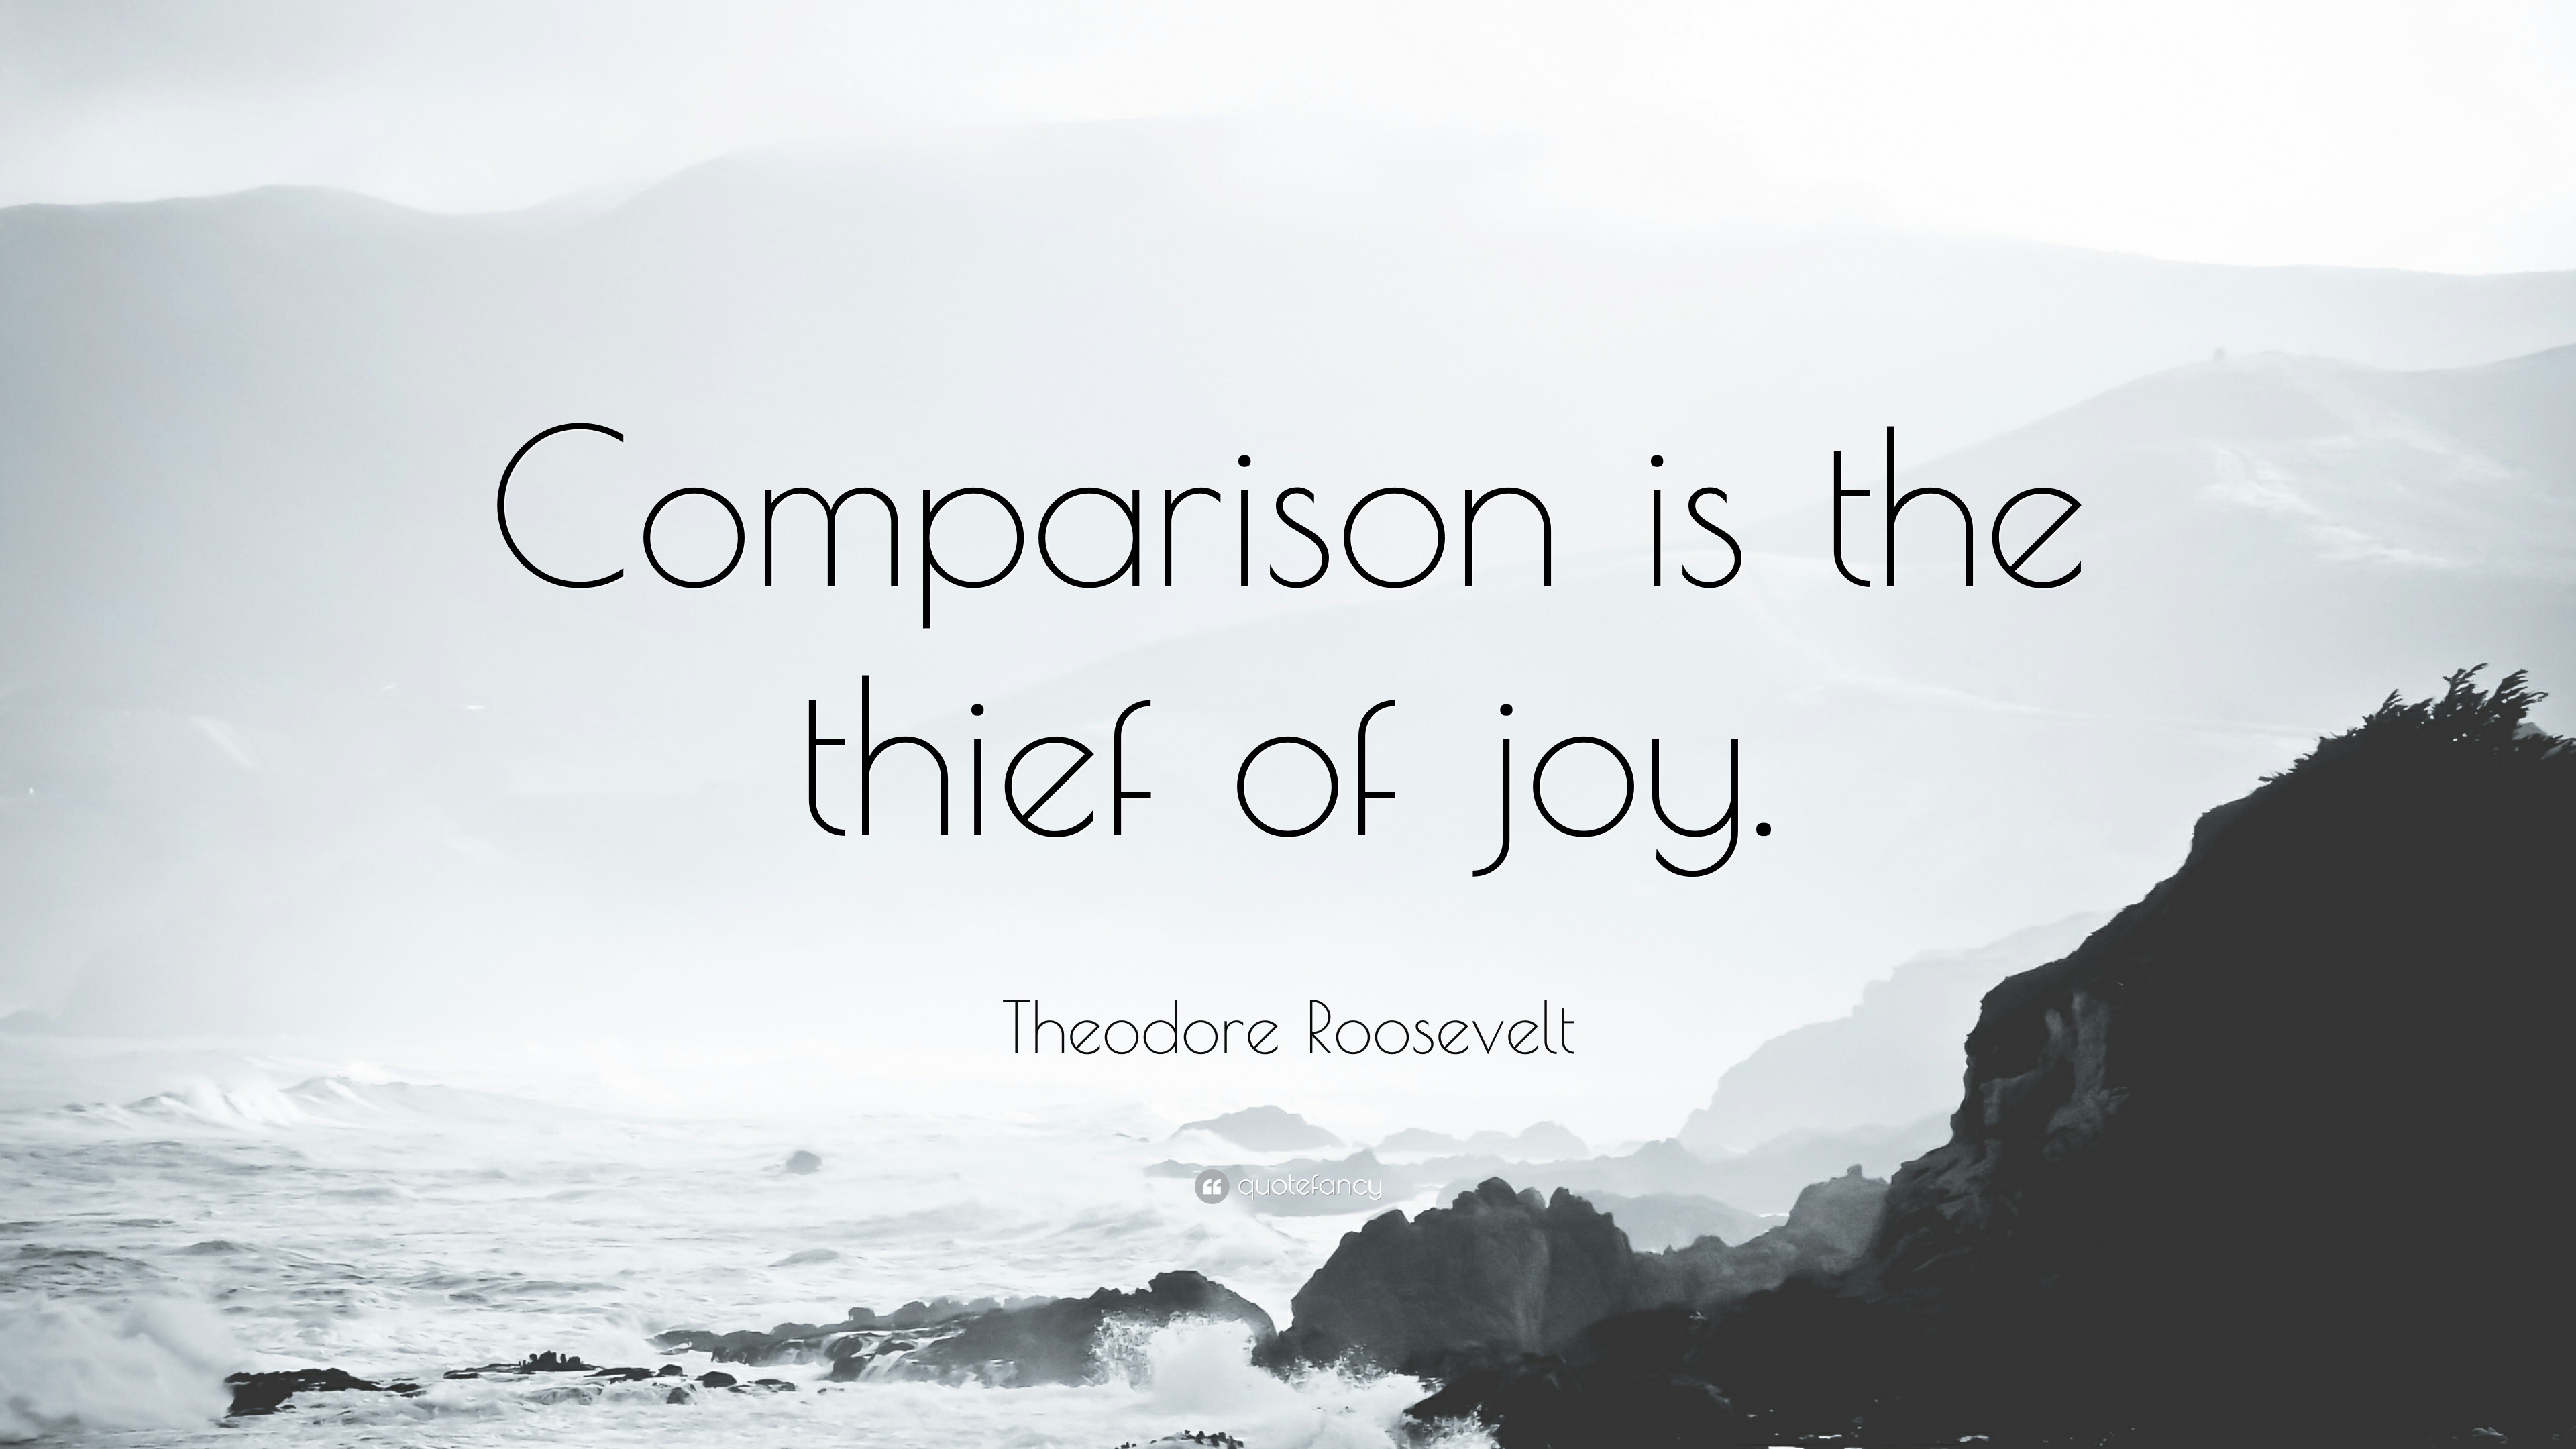 Life Lessons from Lisa: While Comparison/Competition Kills Joy, Celebration Increases Bliss